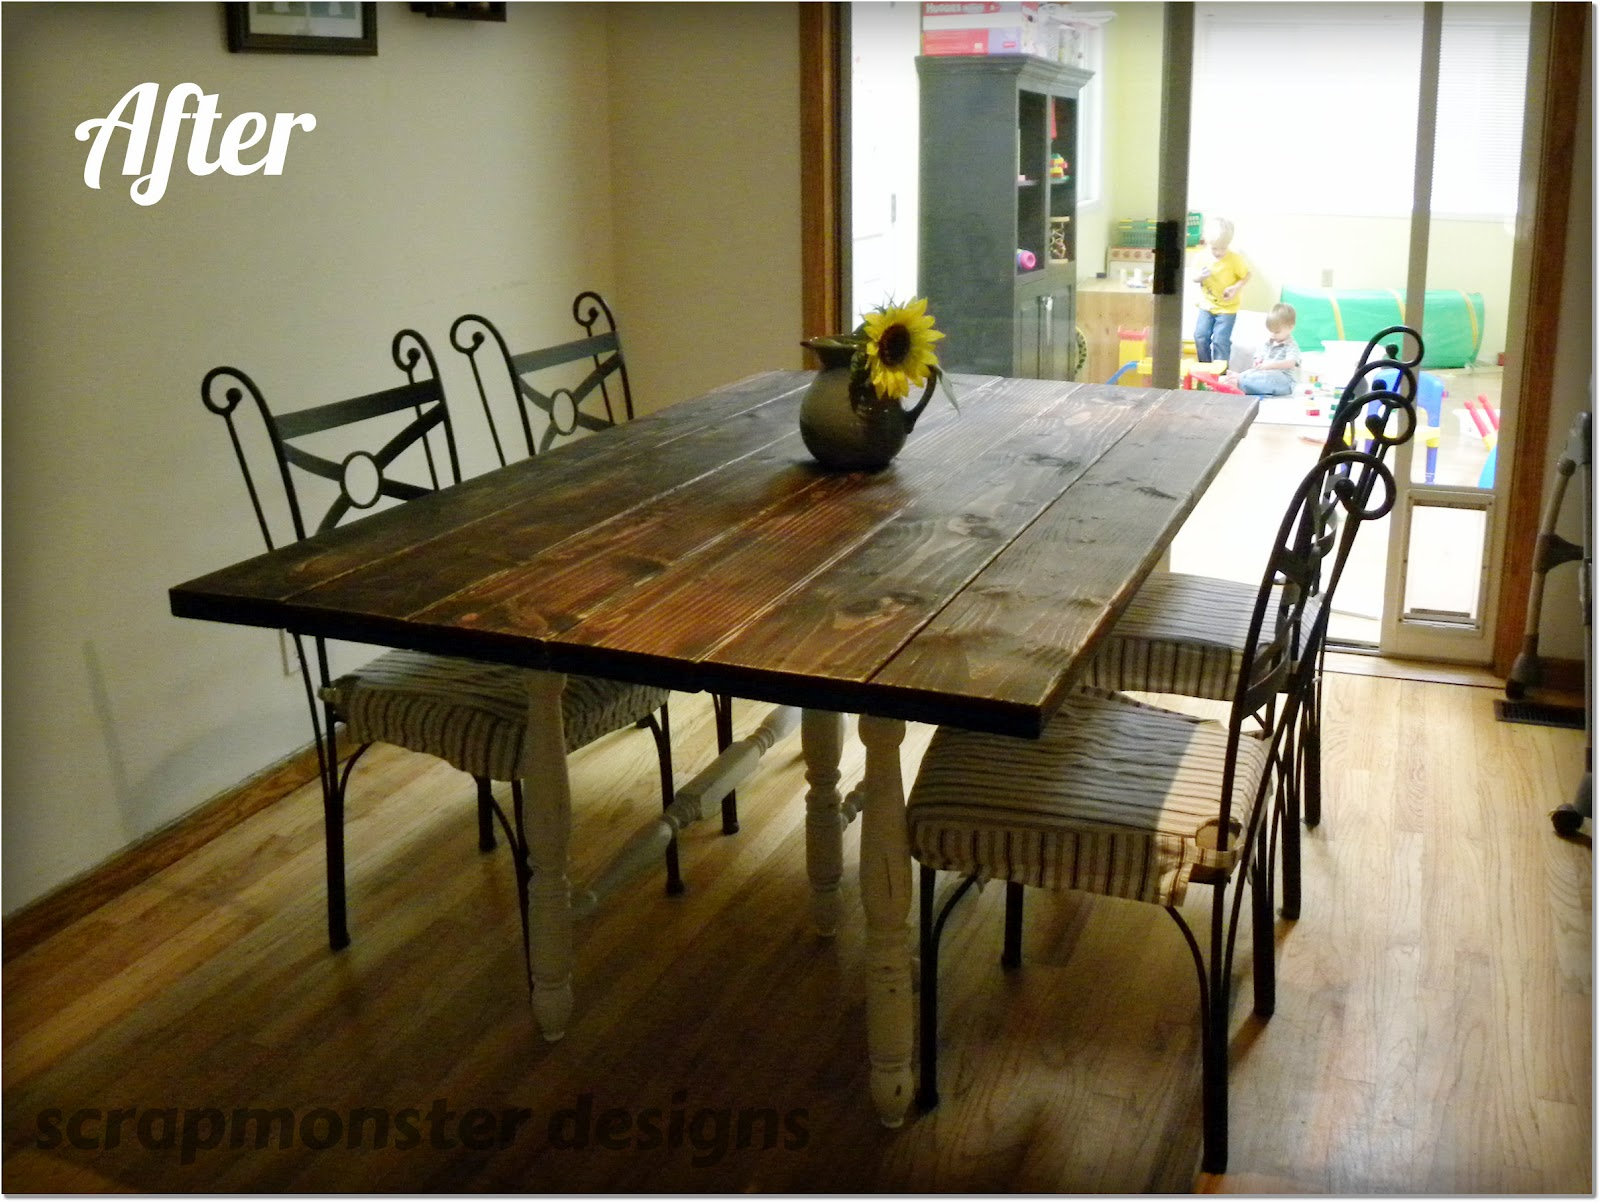 scrapmonster: Rustic Dining Table Make-